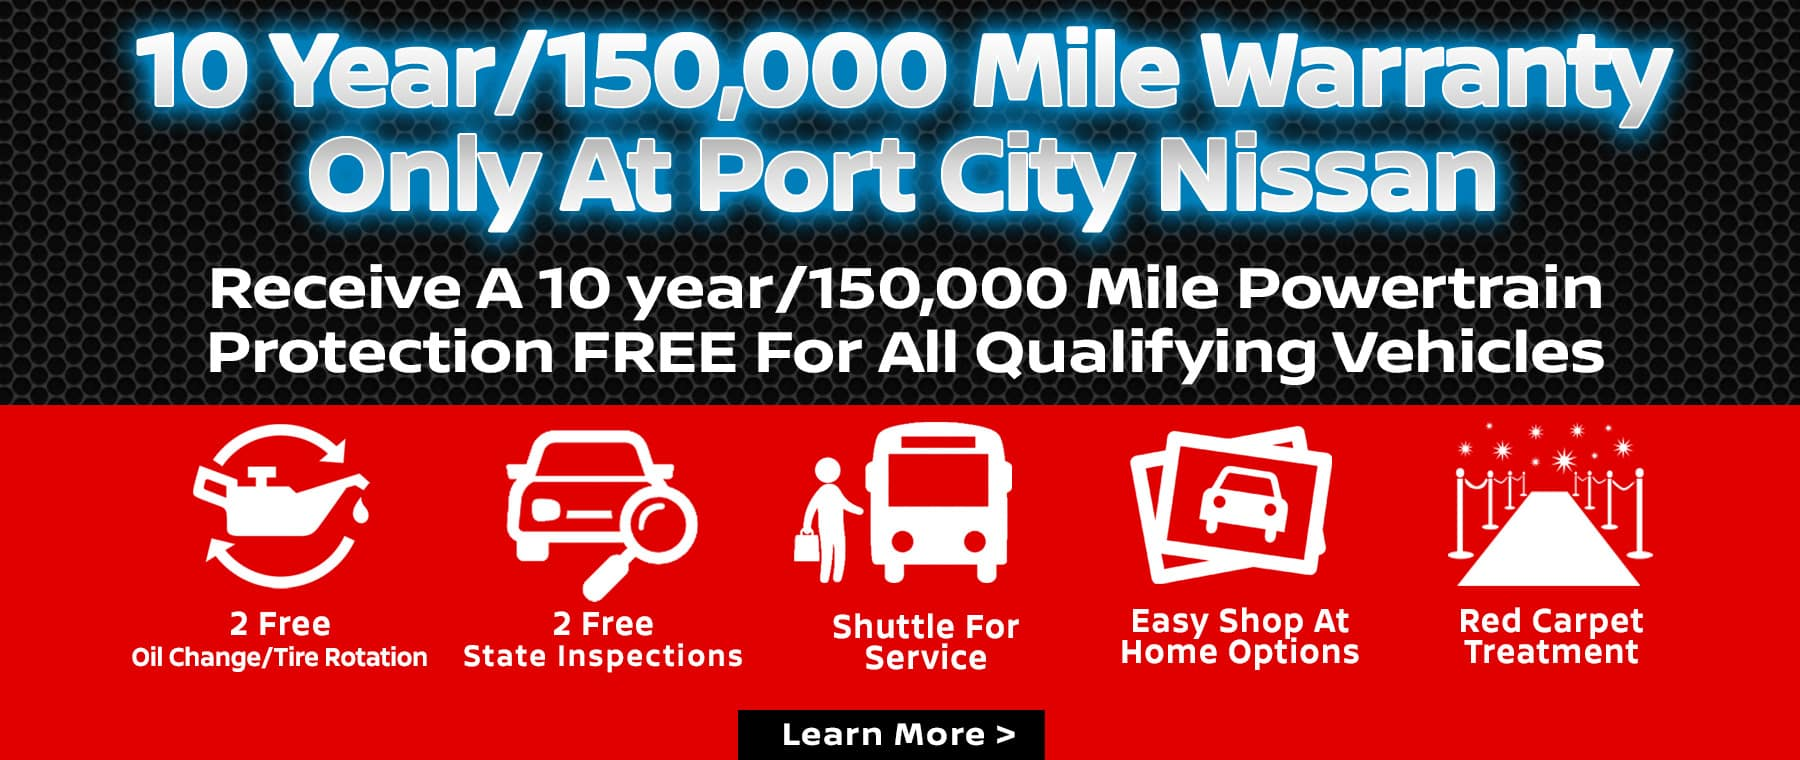 Port City Nissan Warranty